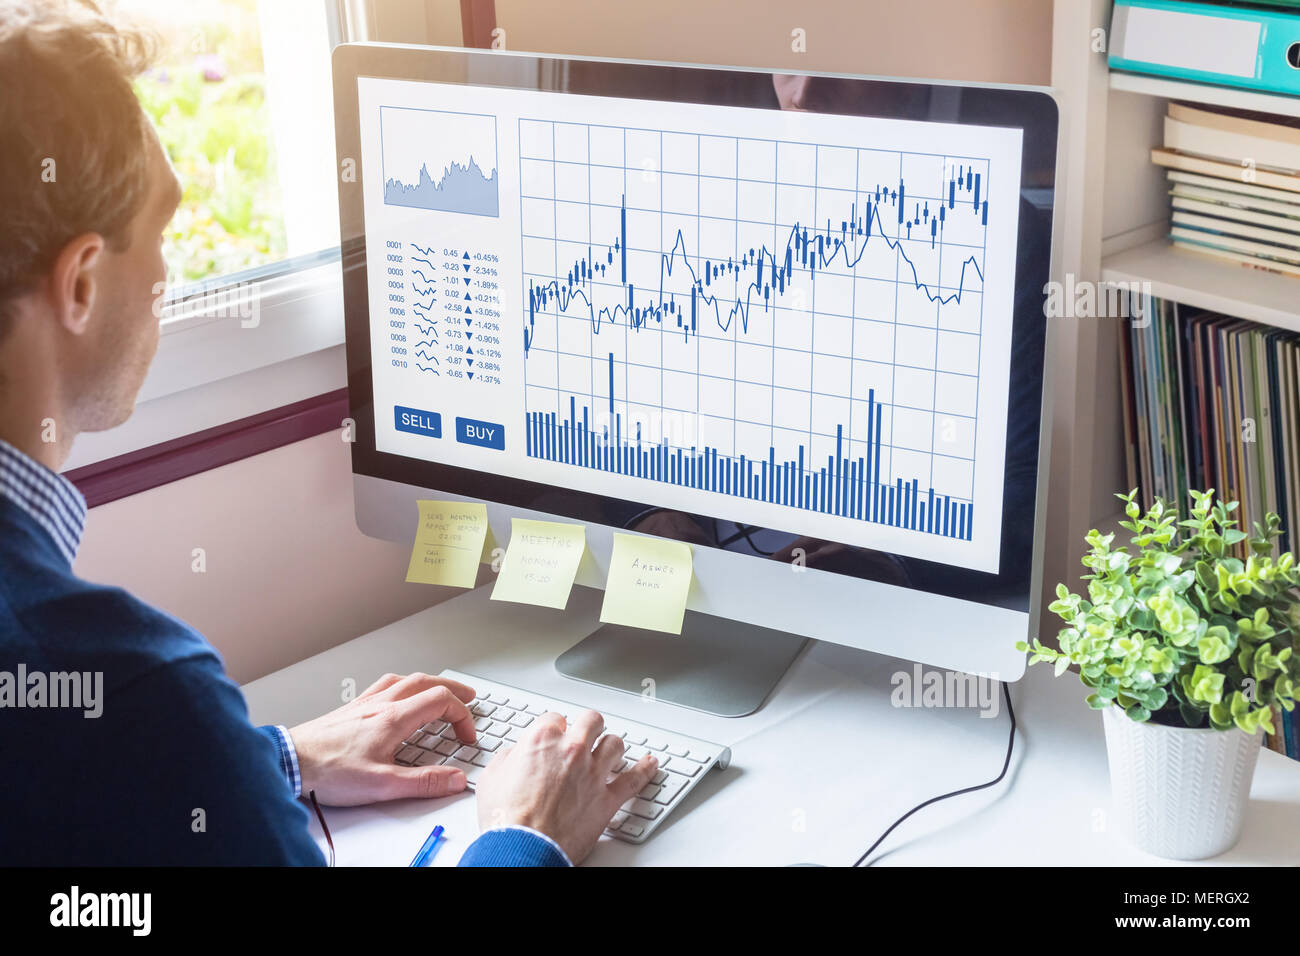 Home trader analyzing forex (foreign exchange) trading charts and buy sell buttons on computer screen, stock market investment, financial technology ( - Stock Image